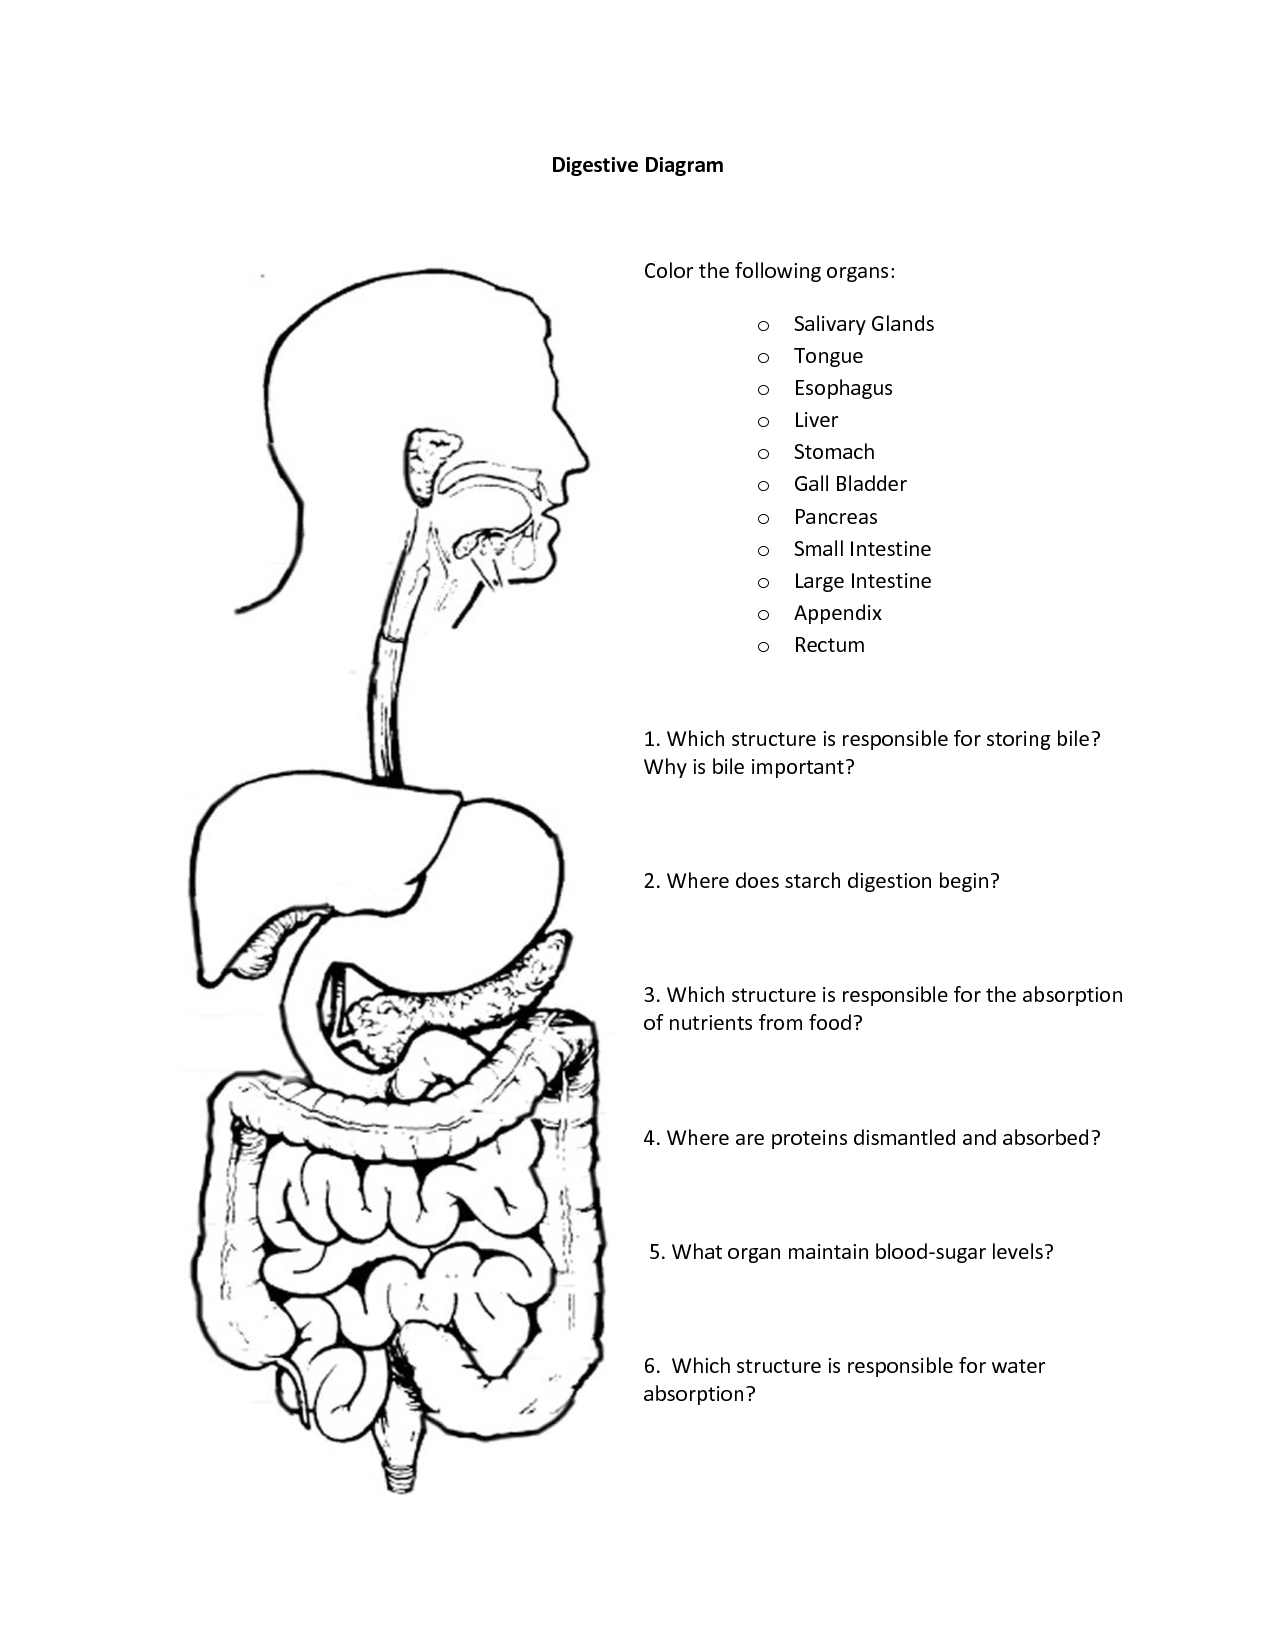 coloring pages digestive system - photo#4